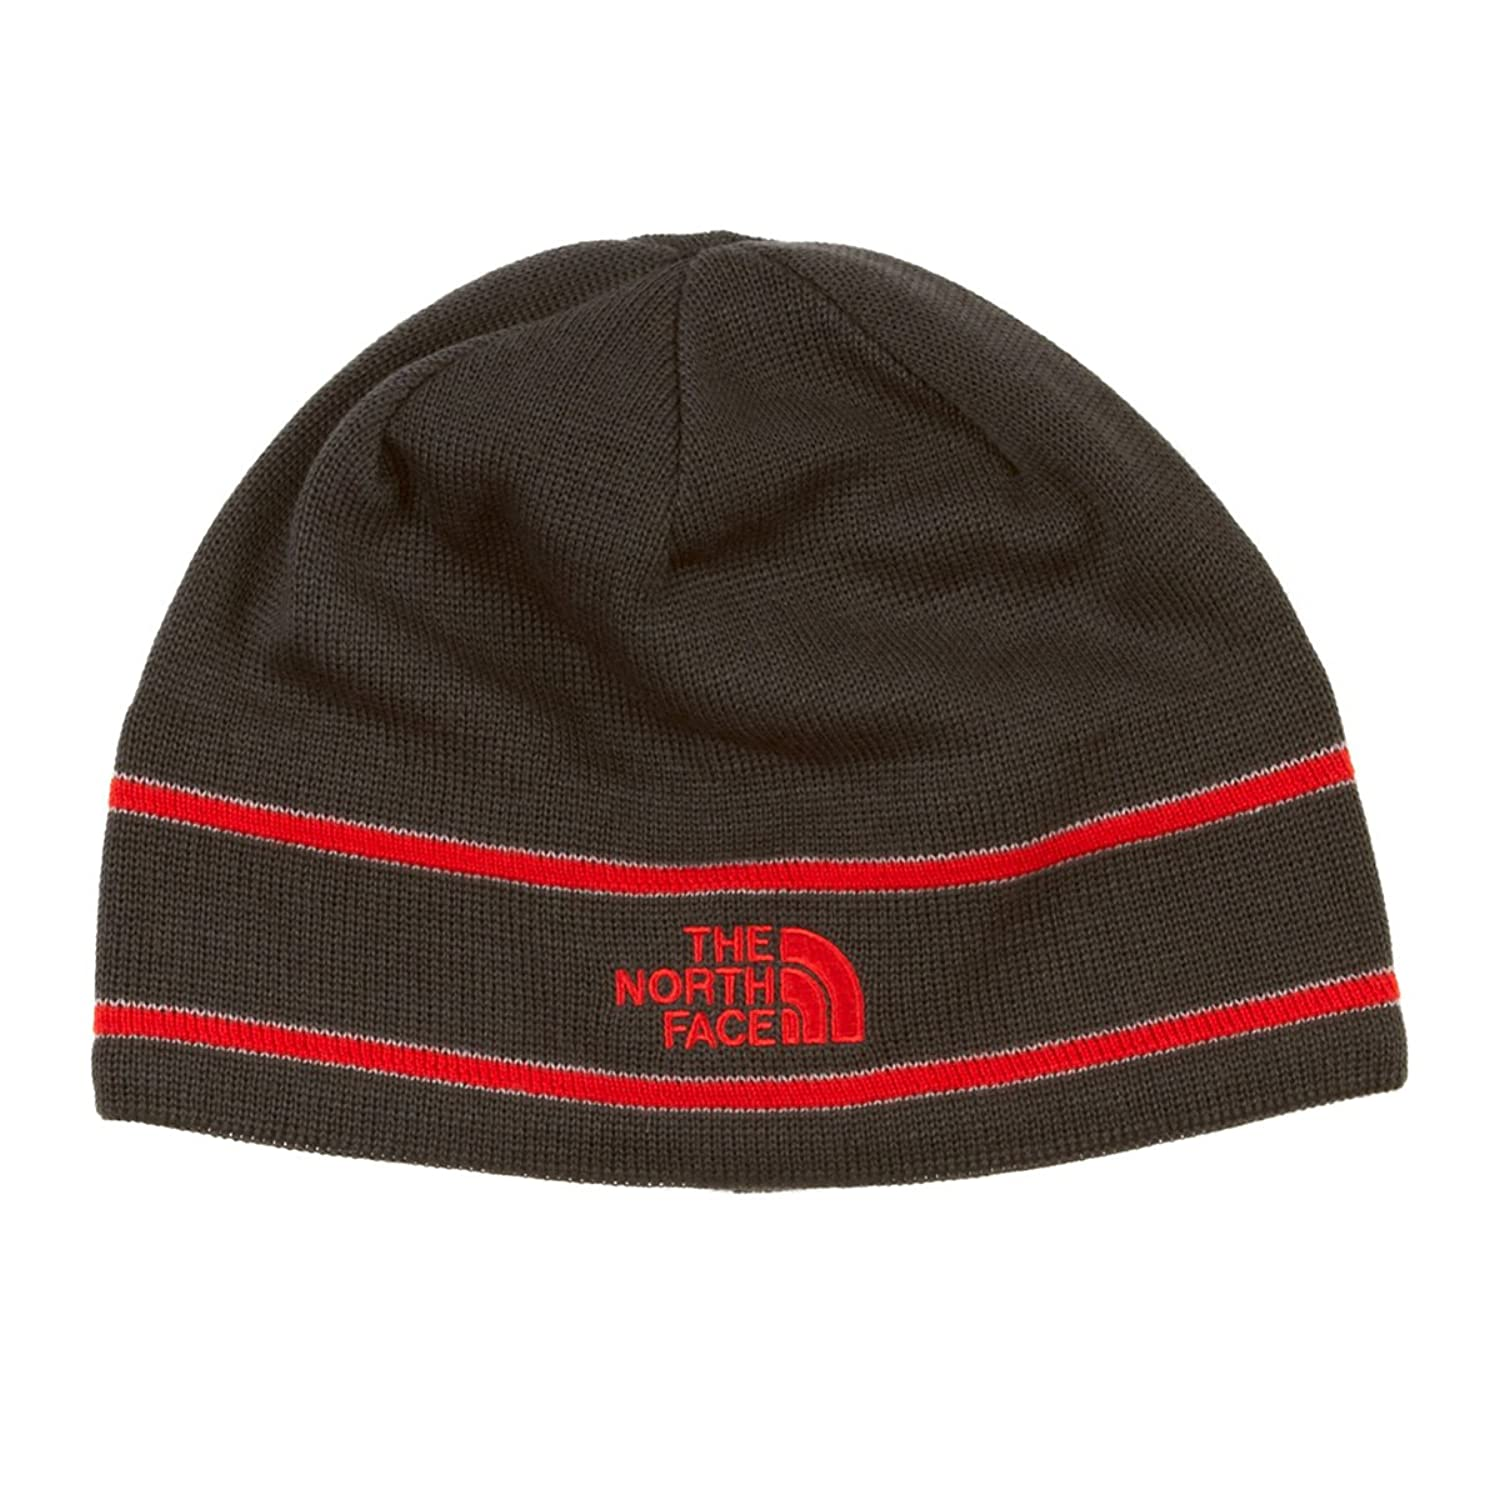 Herren Mütze THE NORTH FACE The North Face Logo Beanie